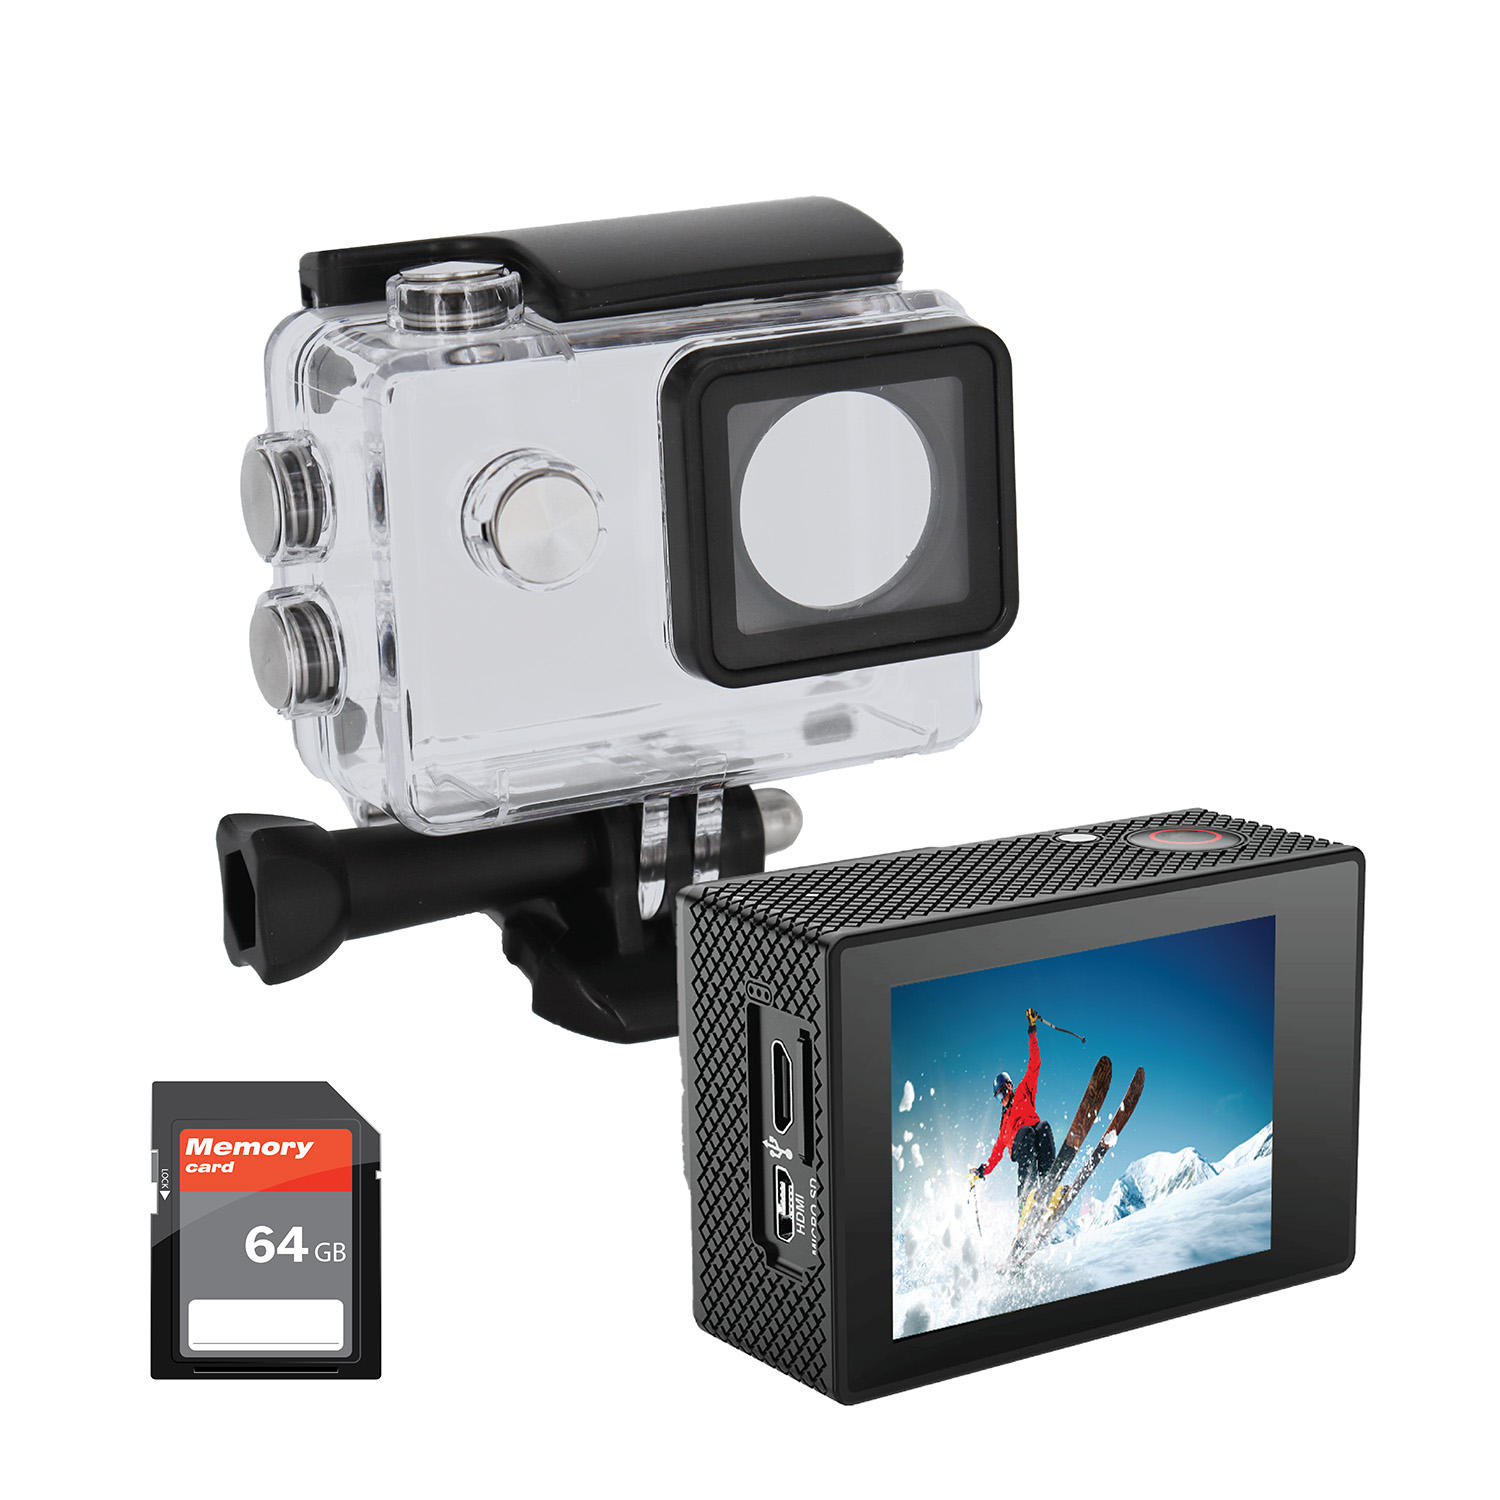 iJoy IJACVS01-SC Visionne 4K Action Camera